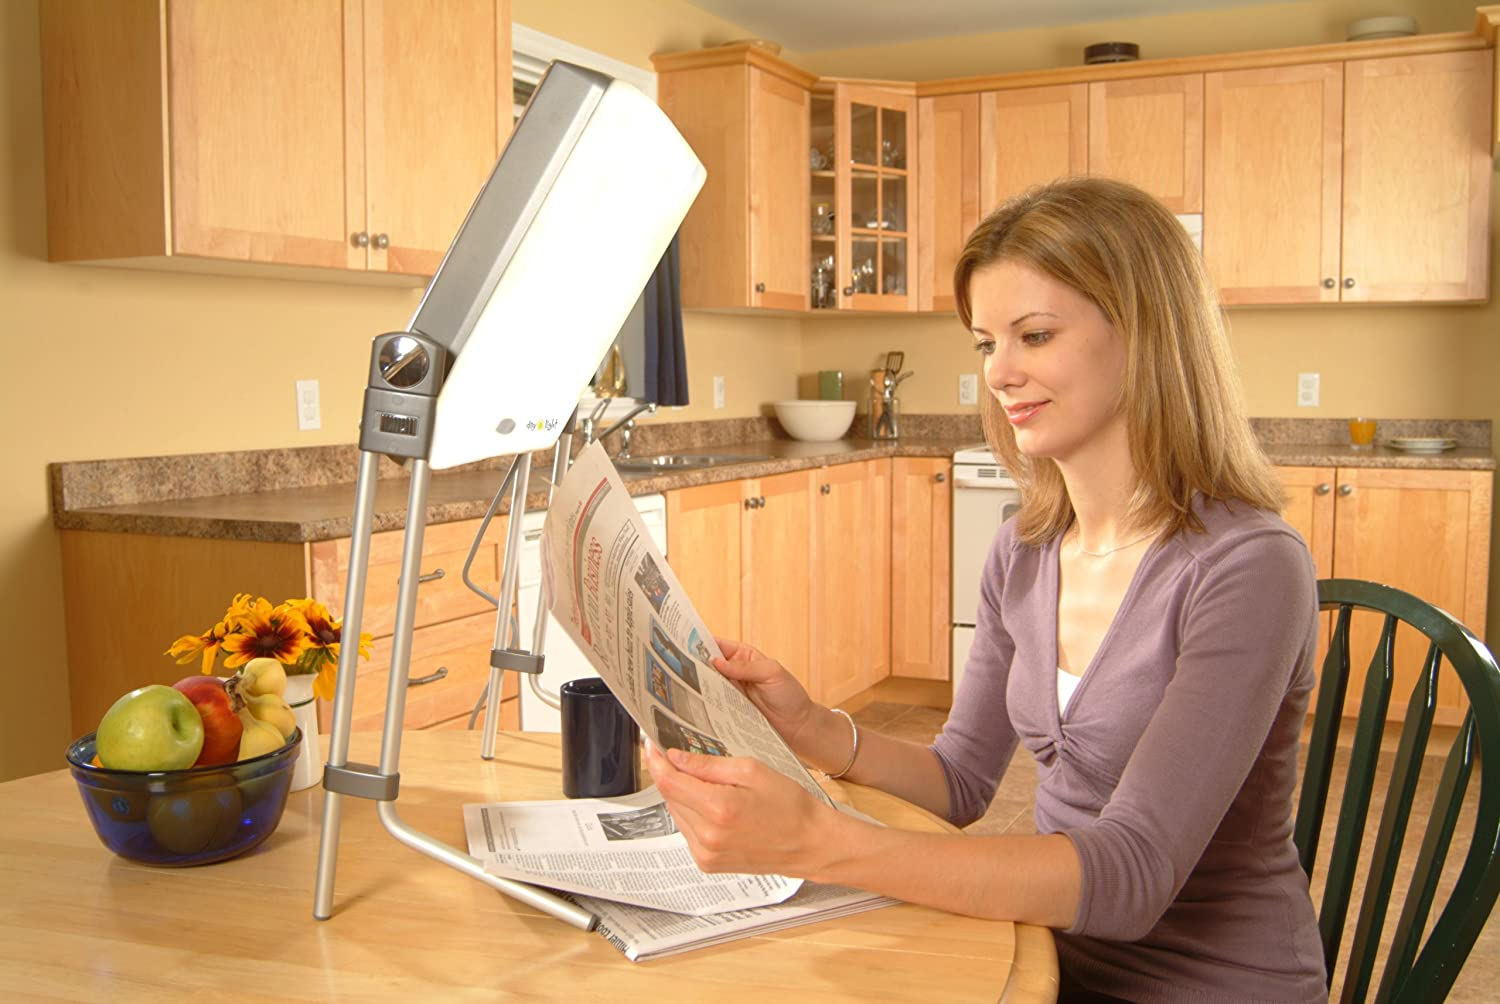 Amazon.com: Day-Light Classic 10,000 LUX Bright Light Therapy Lamp: Health  u0026 Personal Care